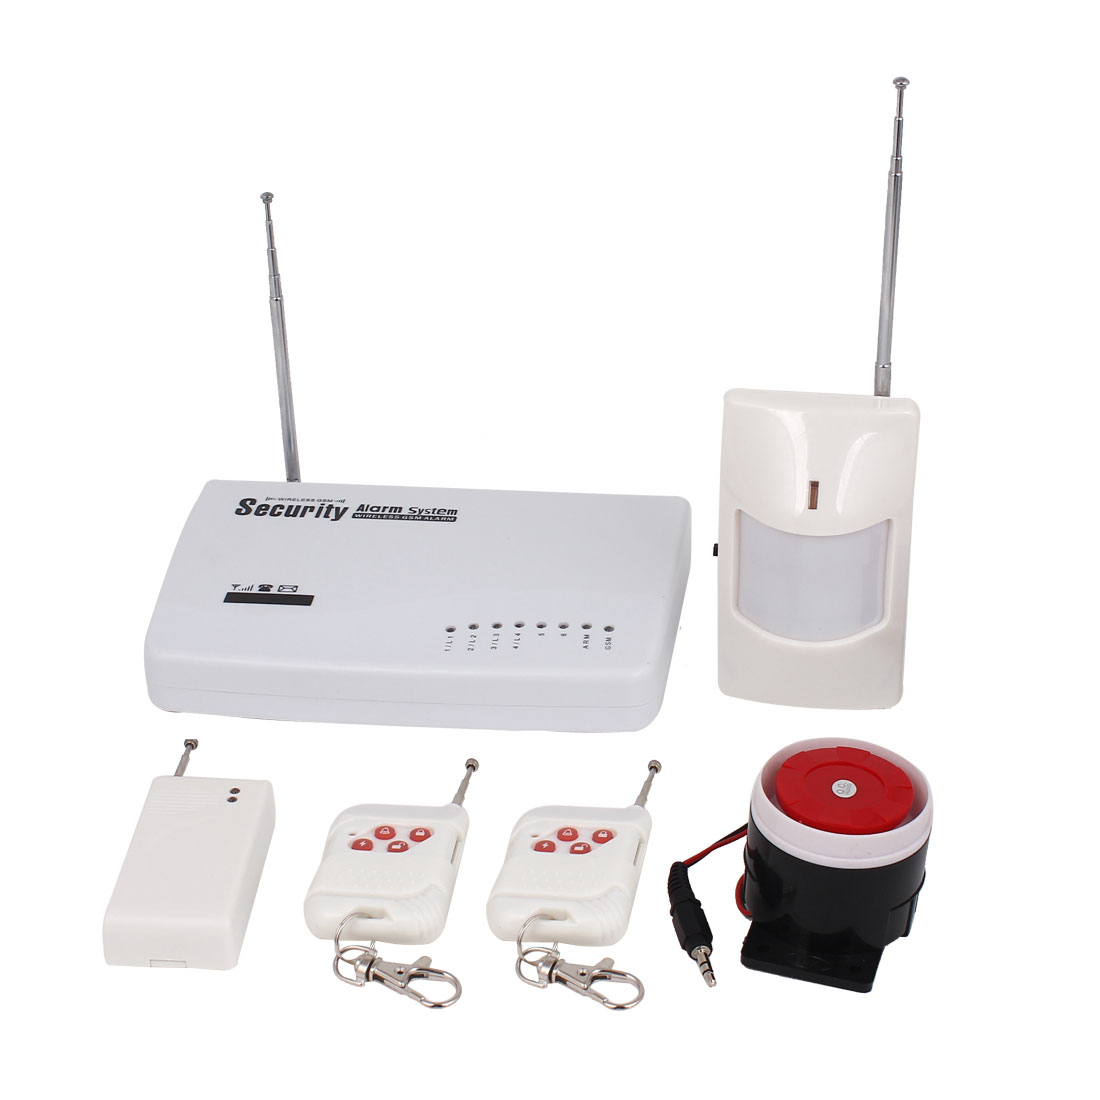 AC 100-240V EU Plug Wireless GSM Autodial SMS Home Security Burglar Alarm System